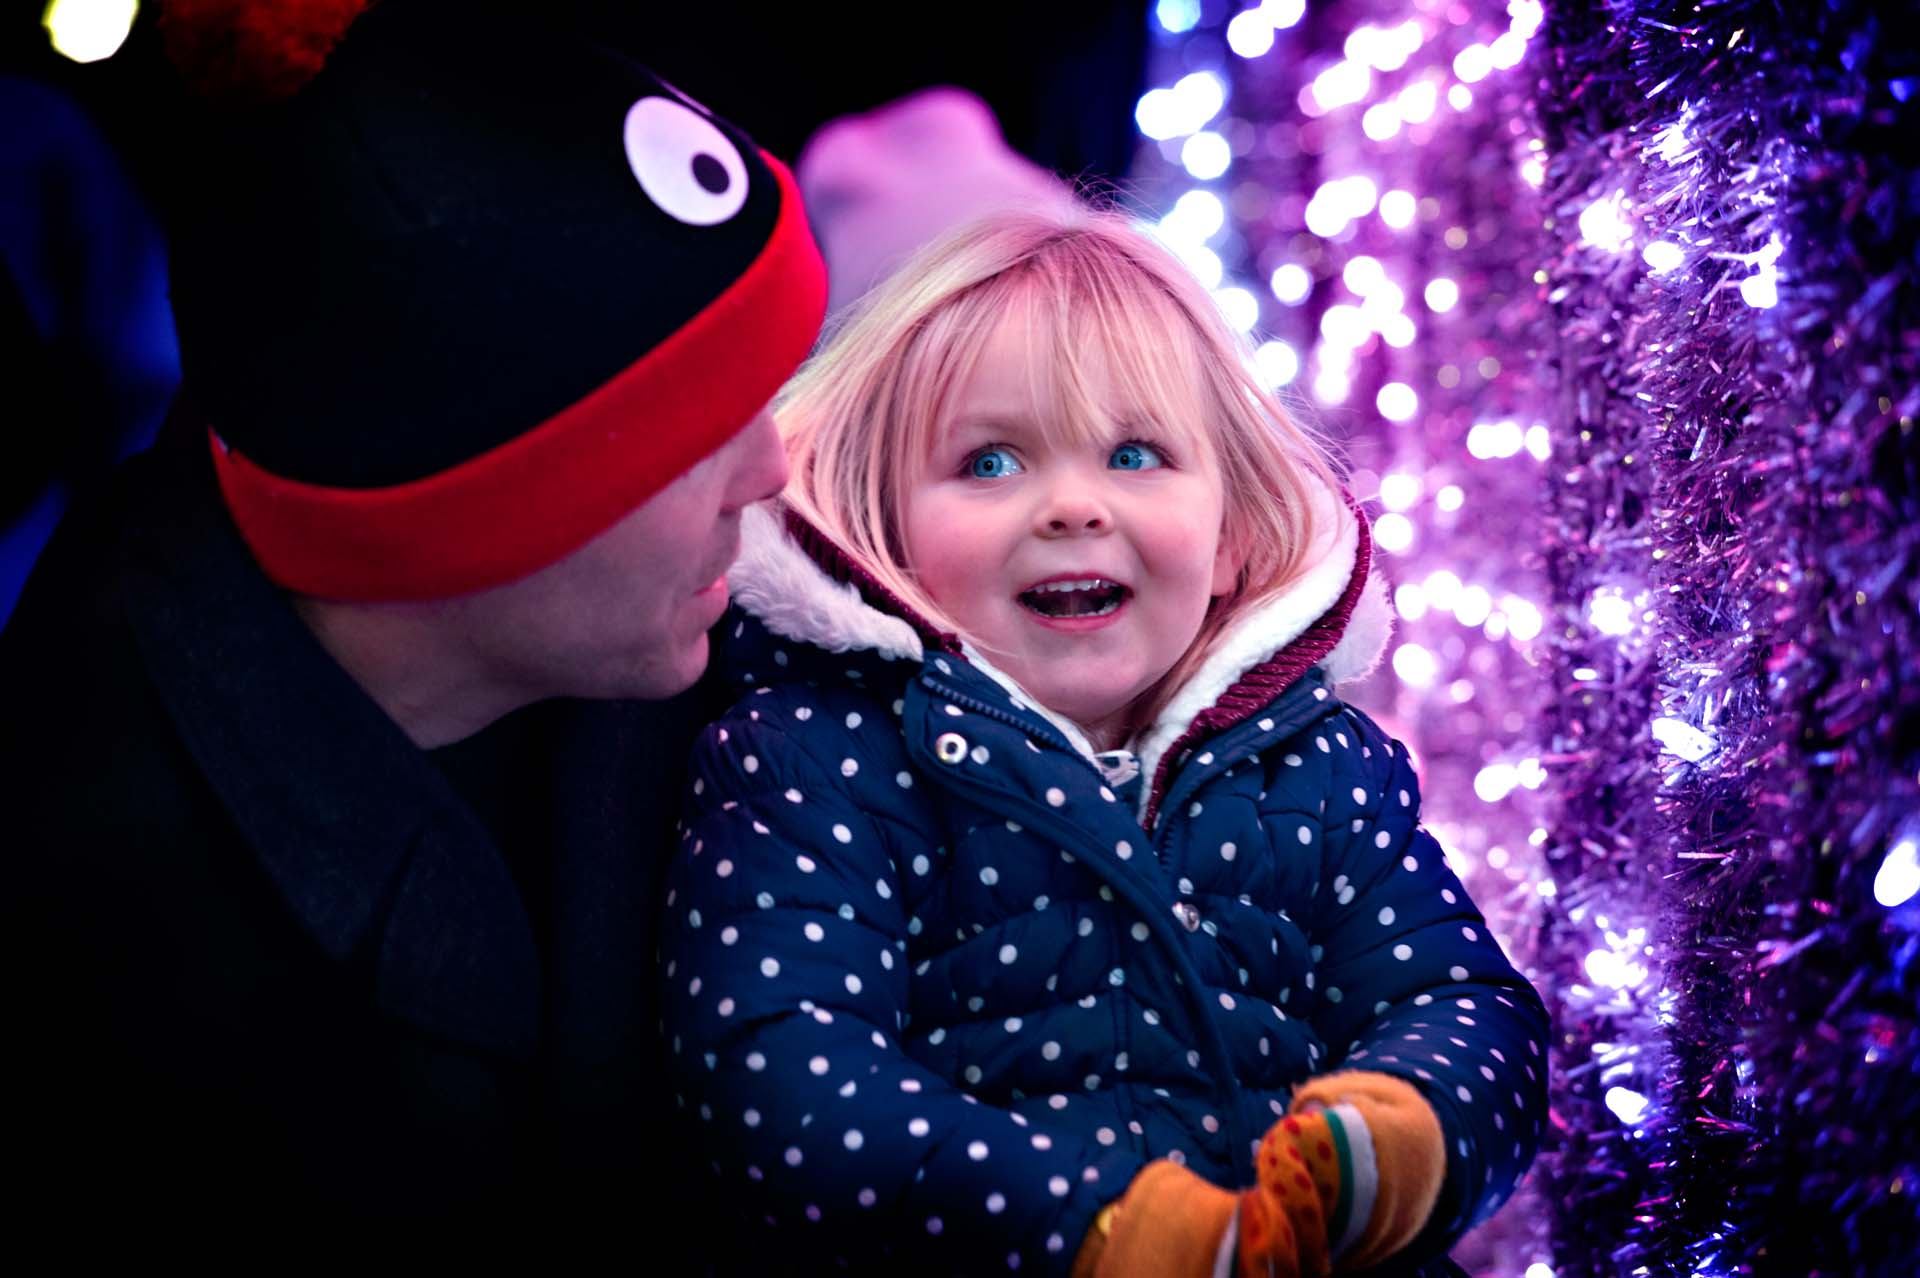 Girl and her father interacting with the Christmas lights